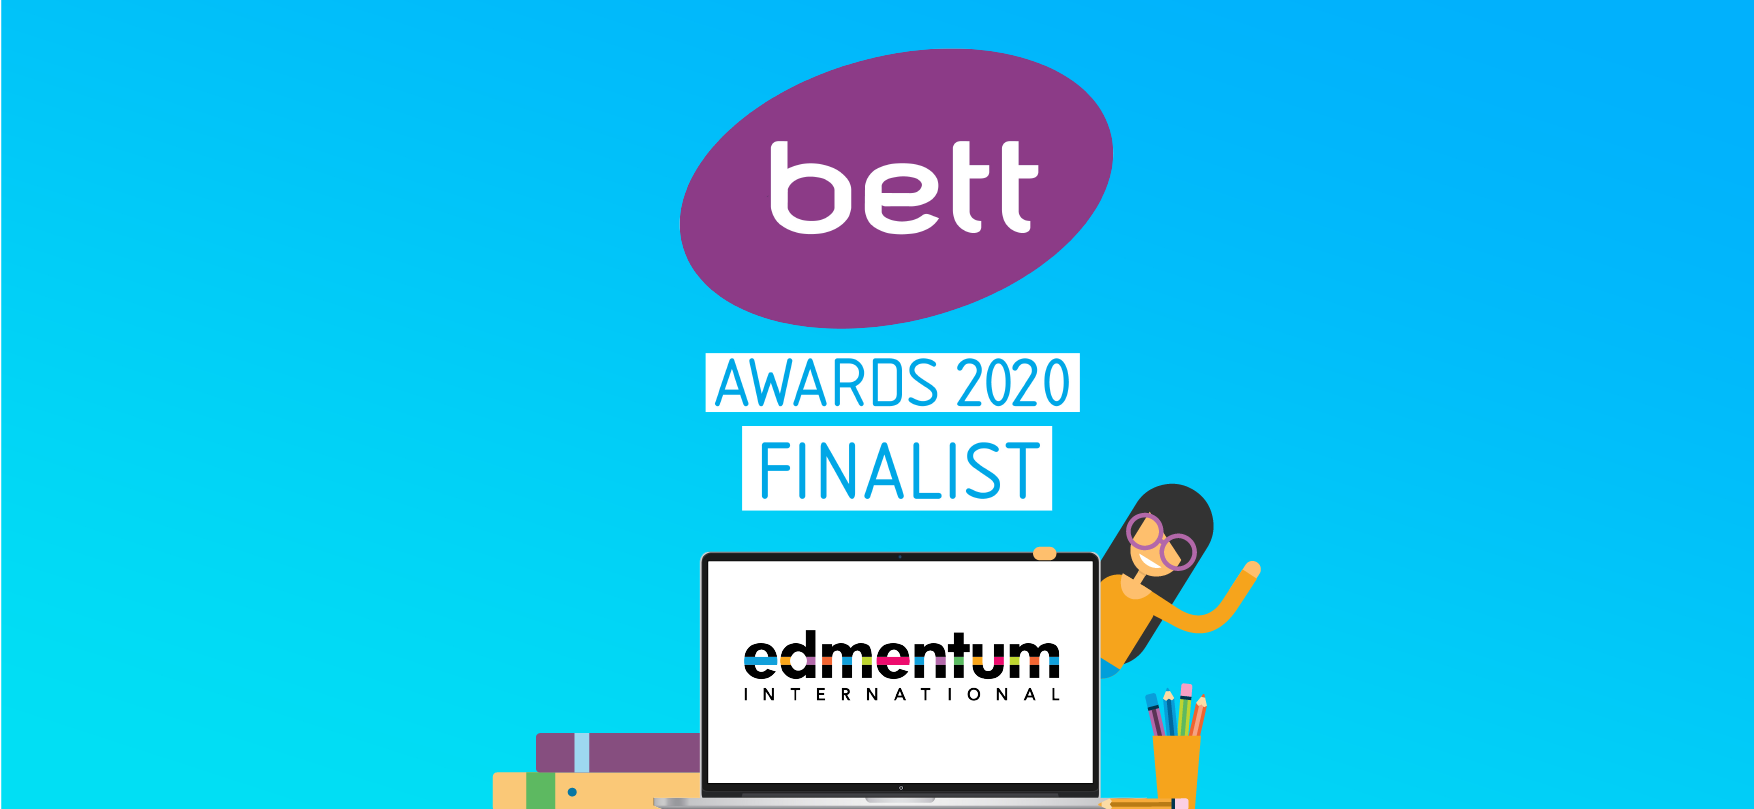 Bett 2020 Awards: We're Finalists!